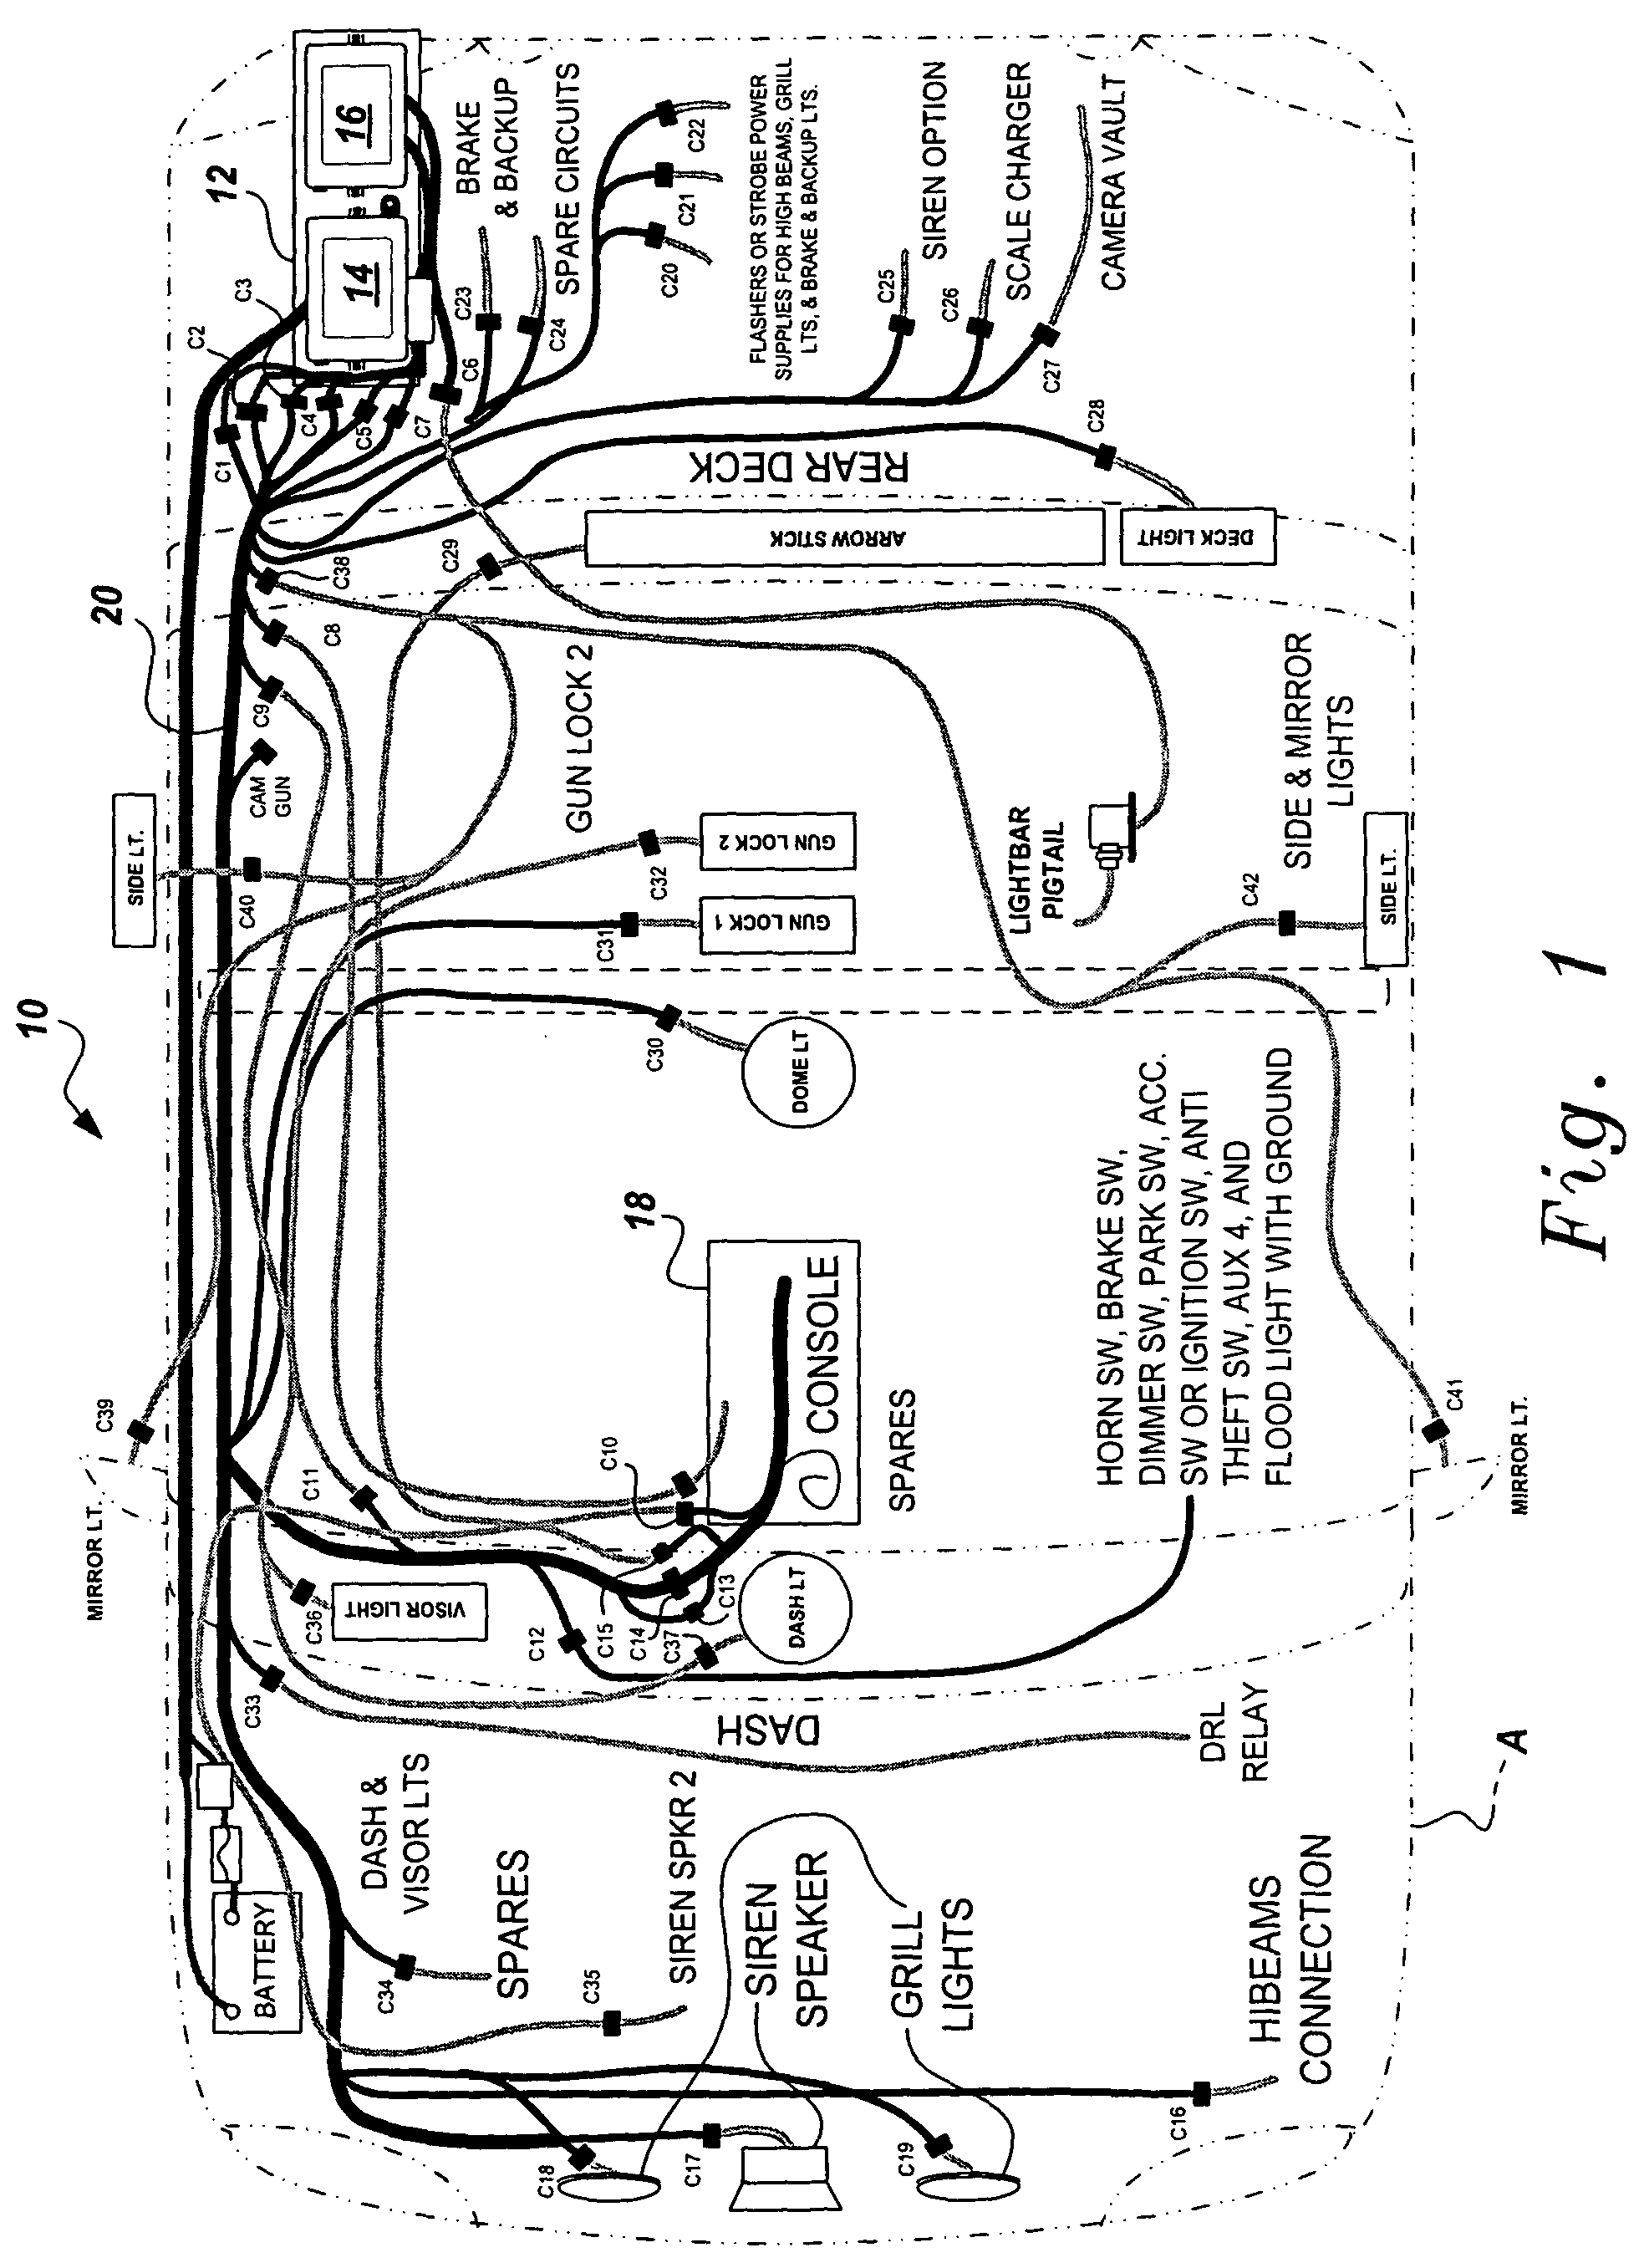 US07342325 20080311 D00001 cat sr4 wiring diagram wiring automotive wiring diagrams Caterpillar SR4B Model Specification Sheet at fashall.co